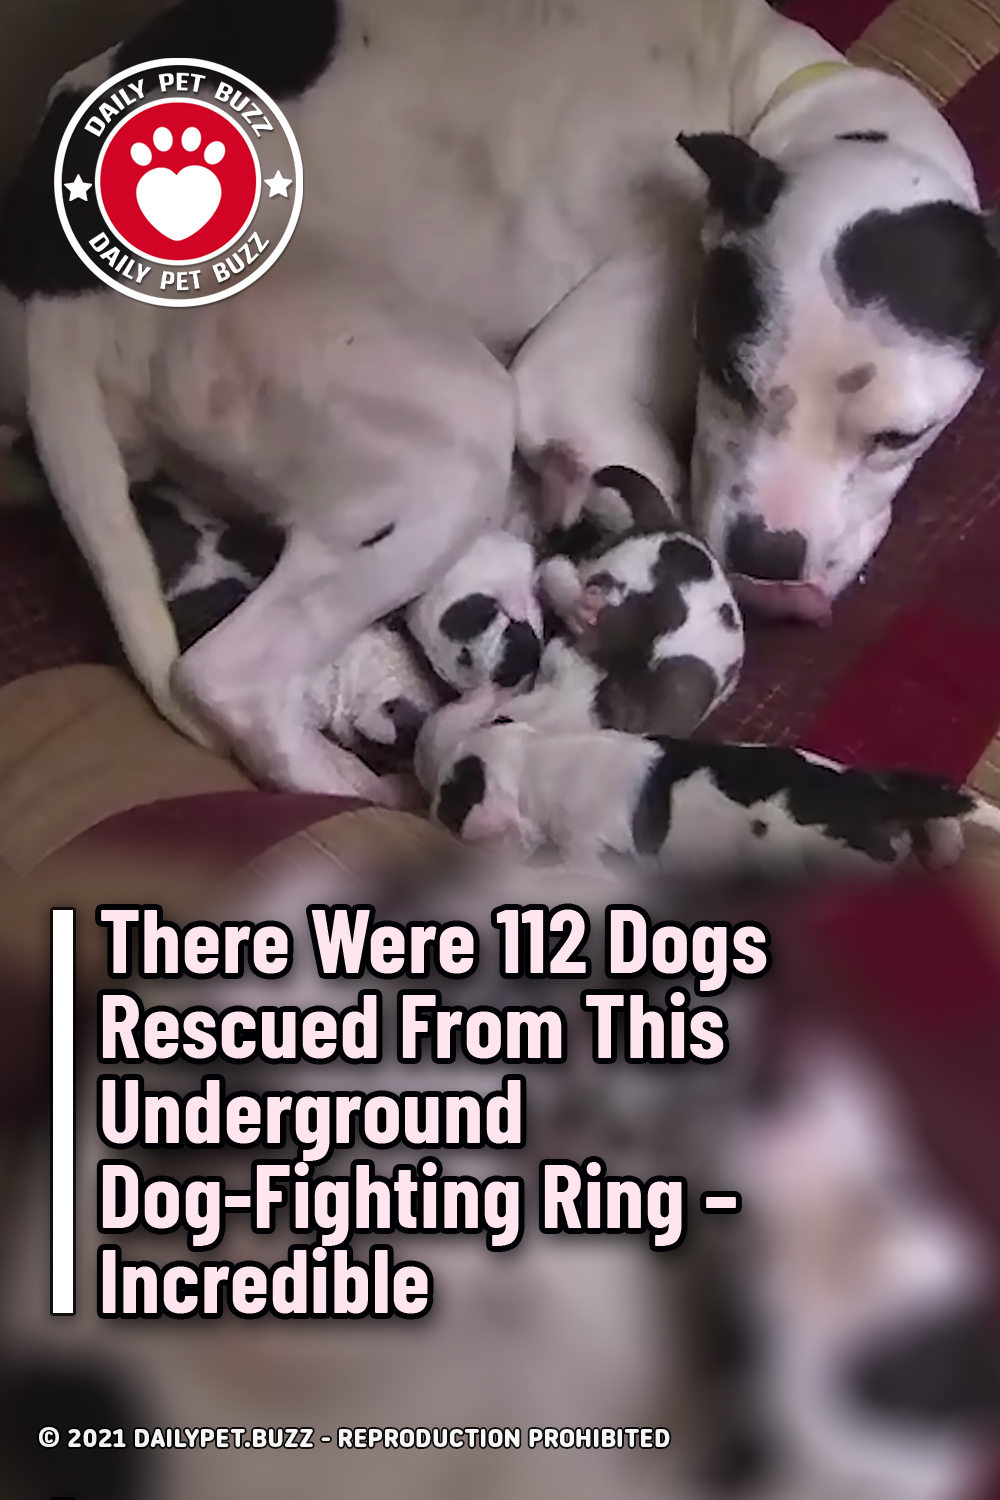 There Were 112 Dogs Rescued From This Underground Dog-Fighting Ring – Incredible